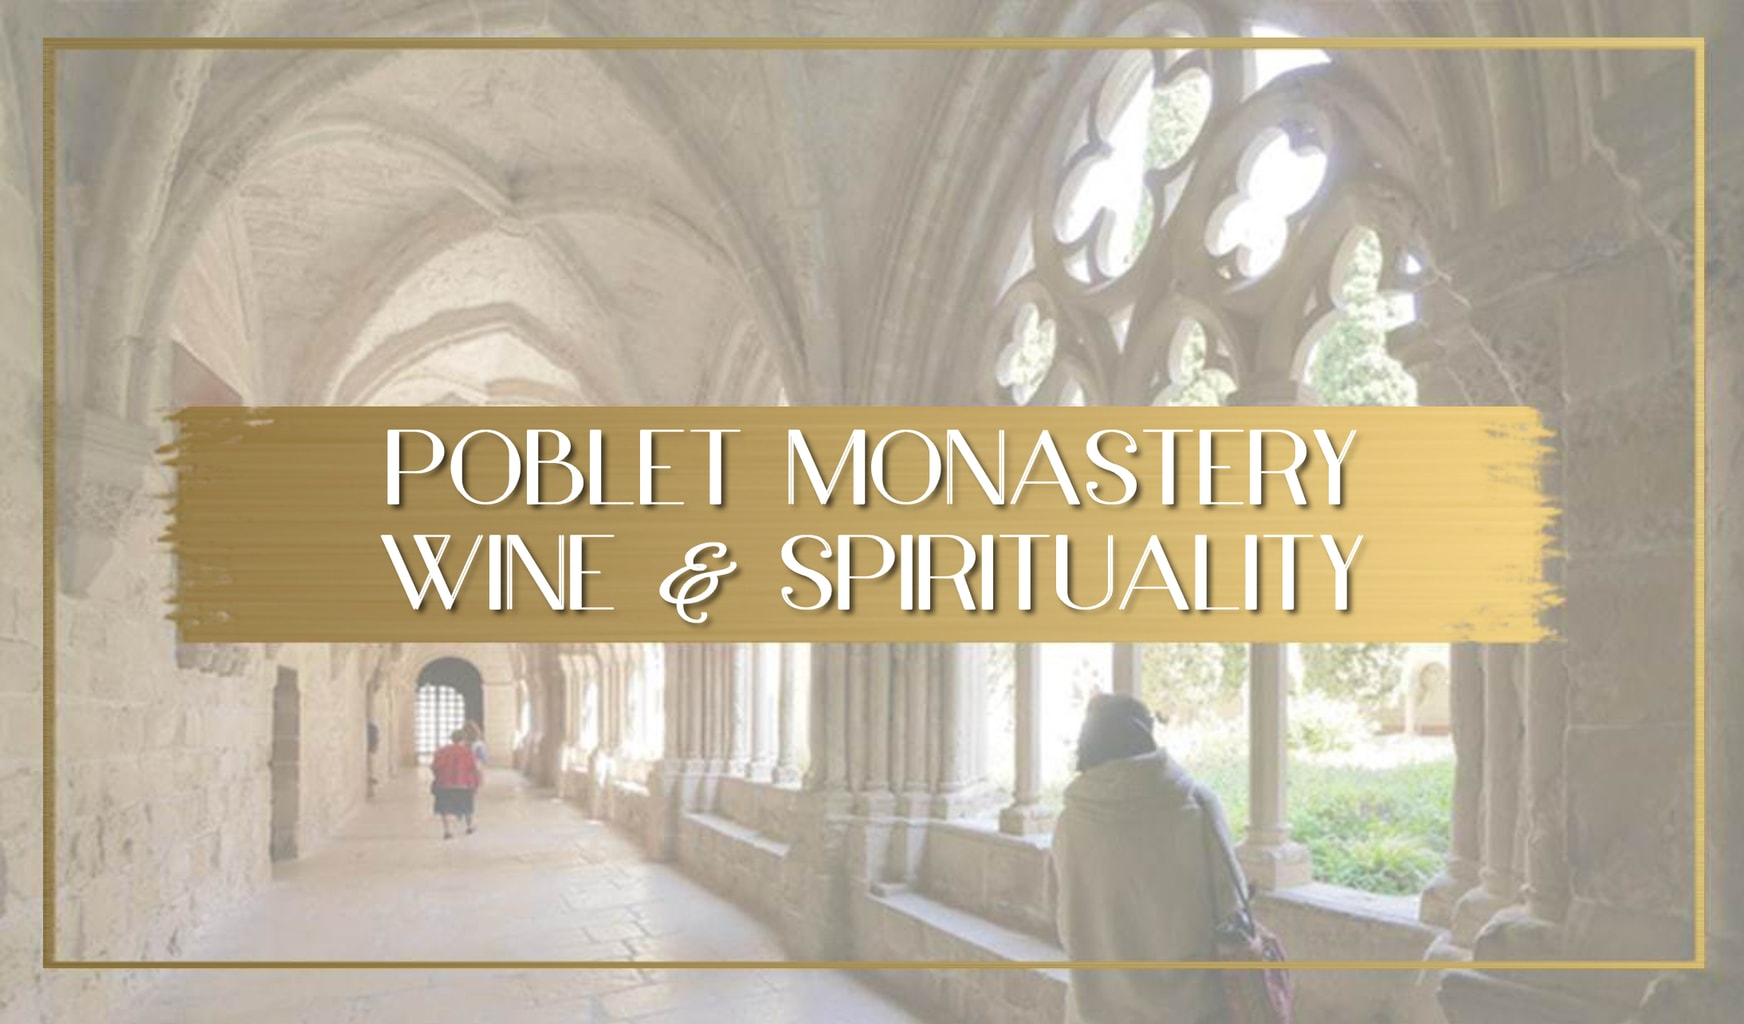 Visiting Poblet Monastery main